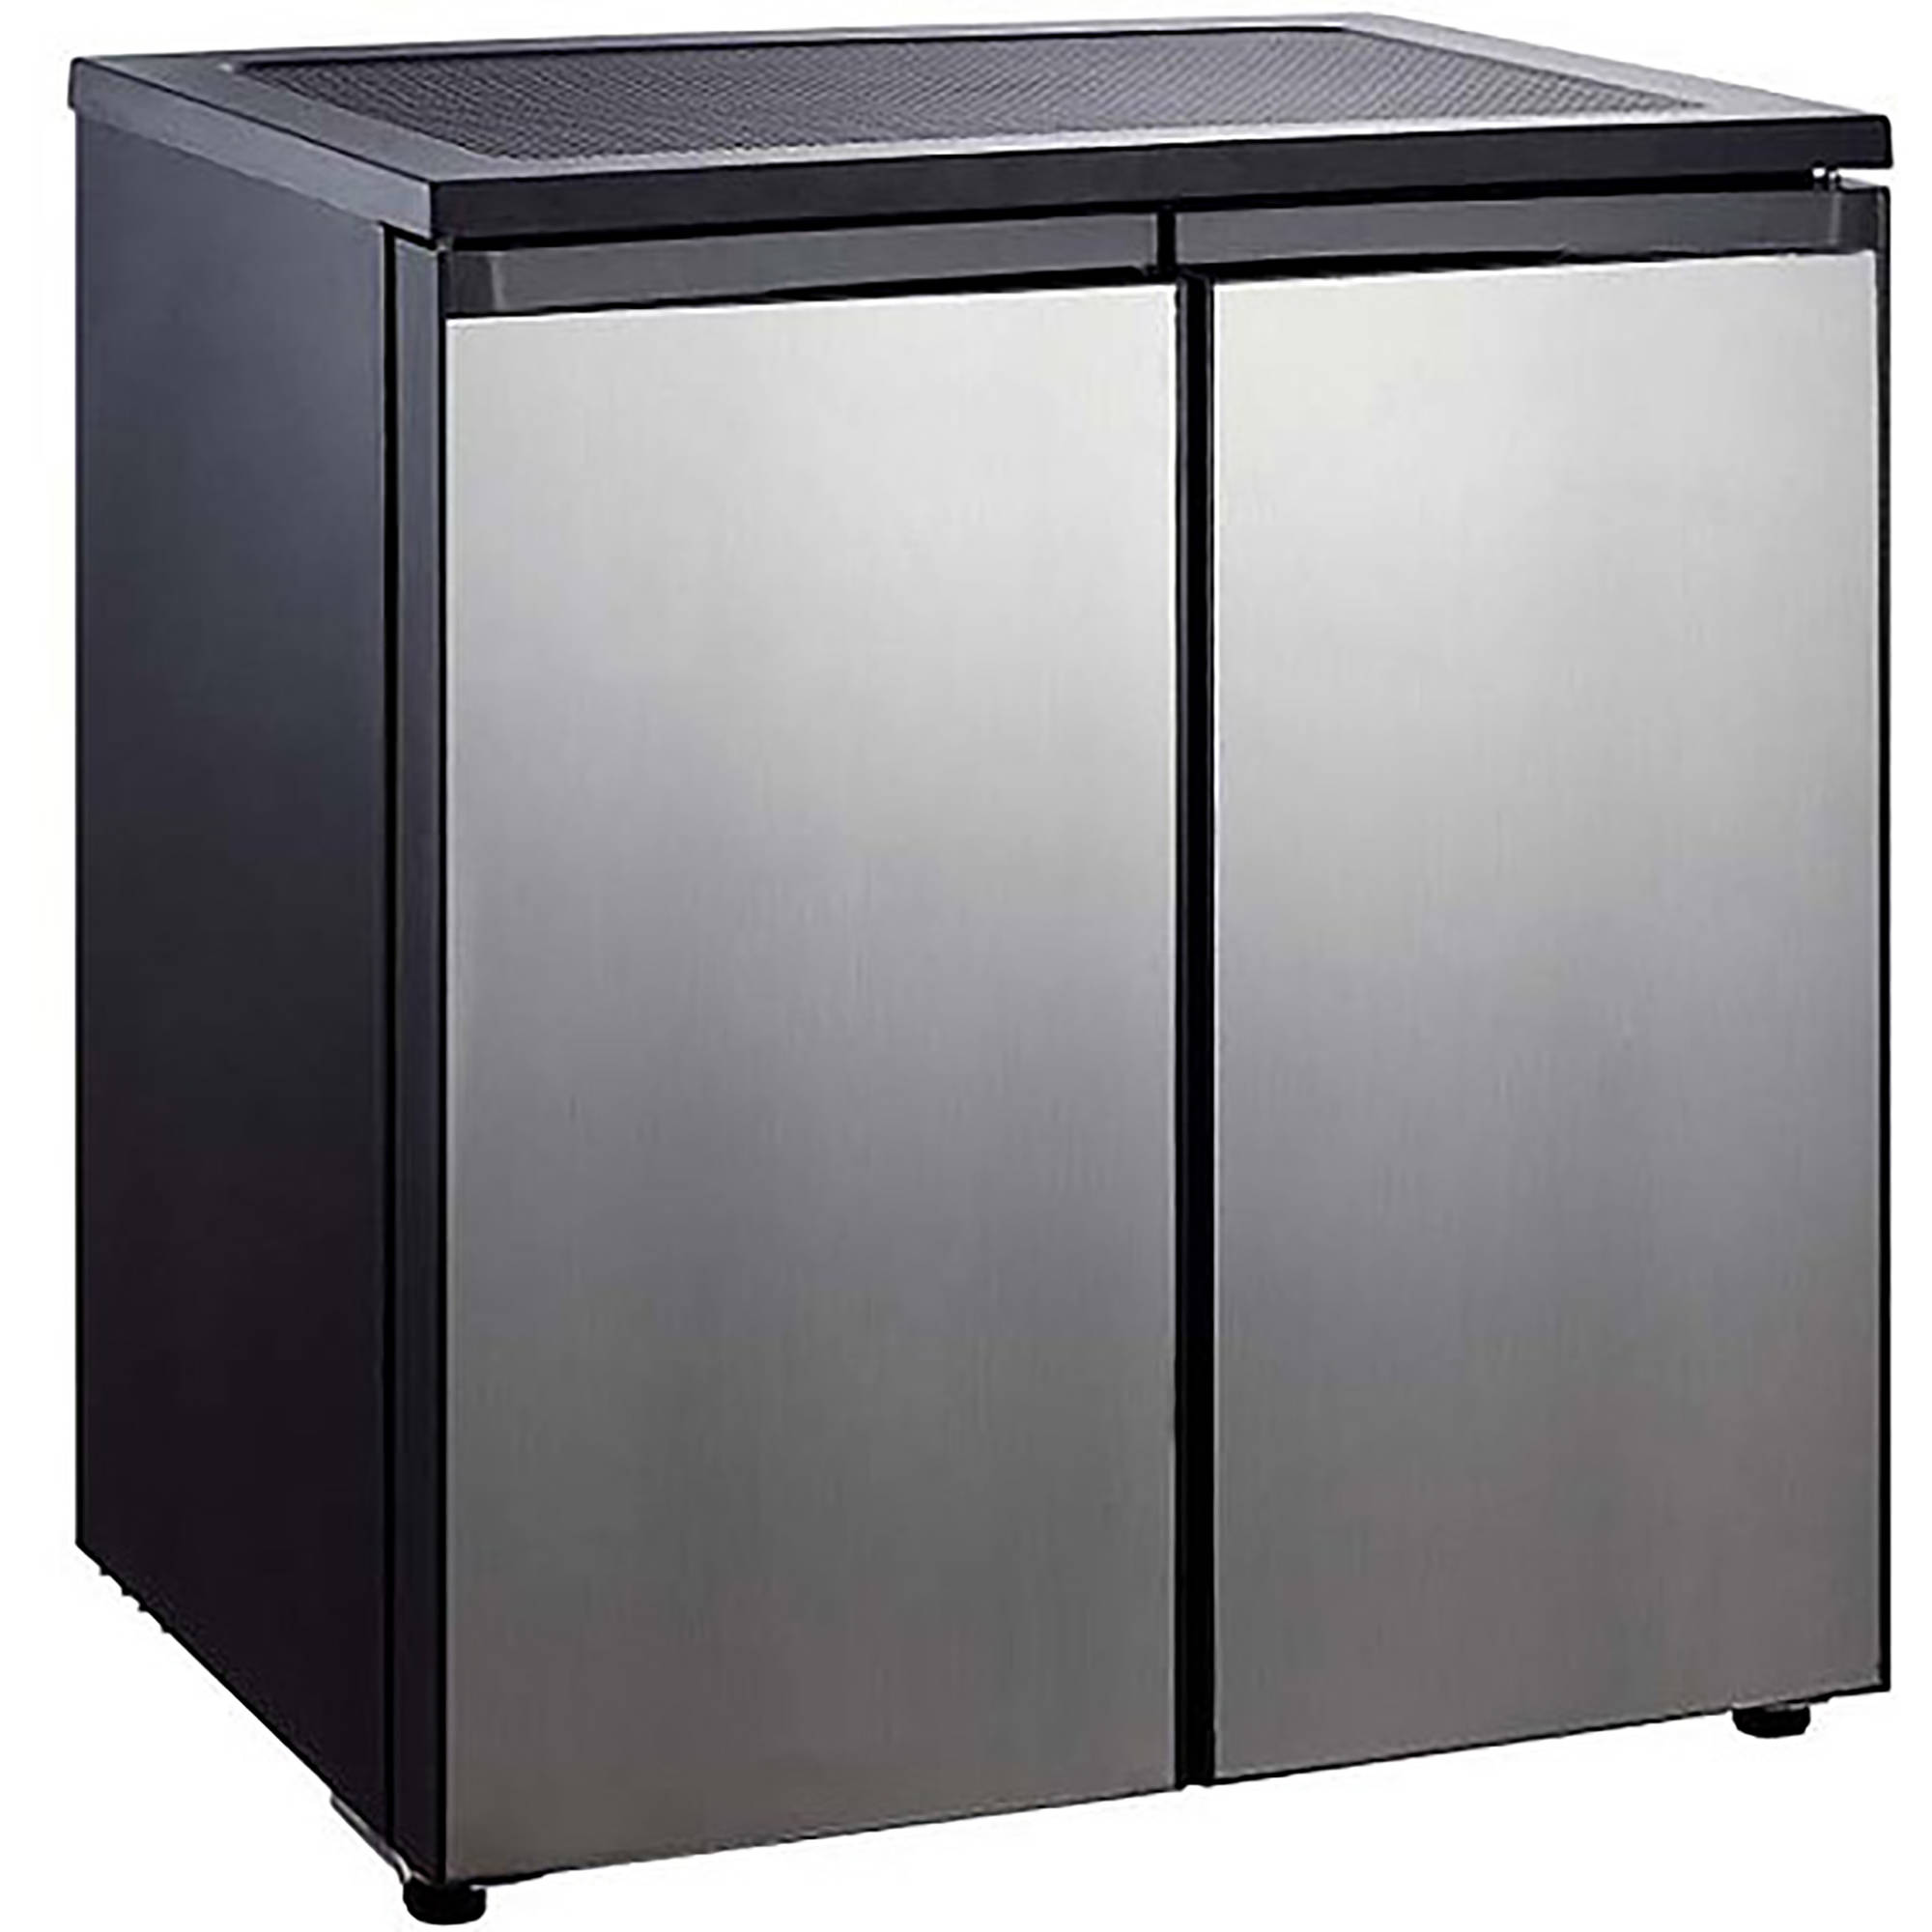 Haier 3.2 Cu Ft Two Door Refrigerator With Freezer HC32TW10SV, Black    Walmart.com